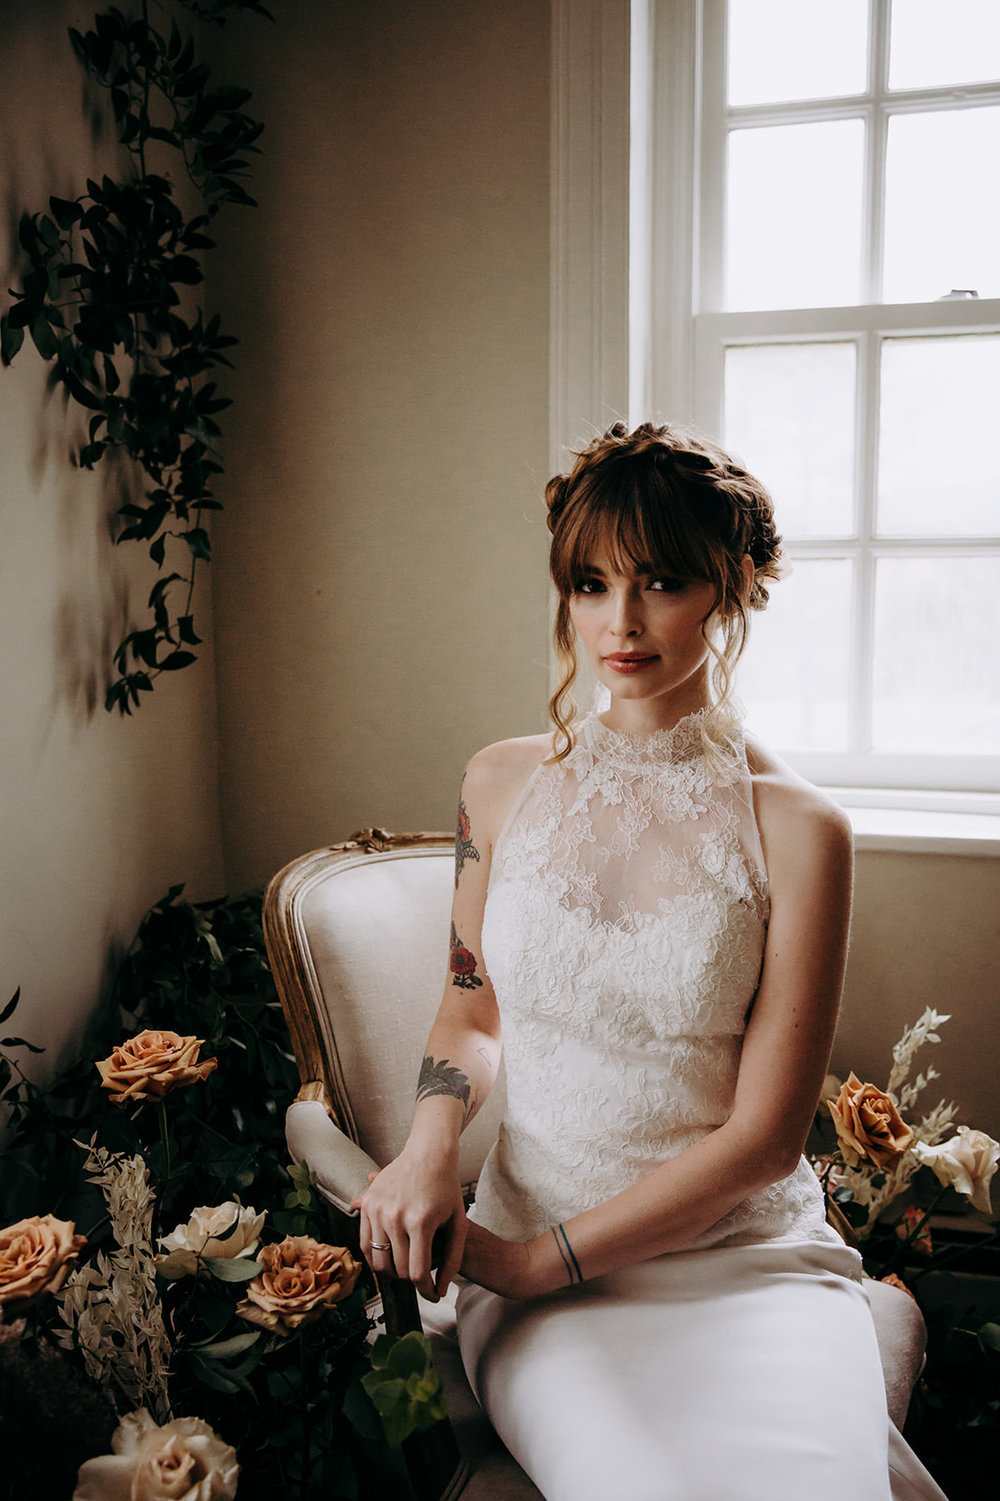 lea-ann-belter-bridal-editorial-windrift-hall-wedding-photographer-new-york-113.jpg